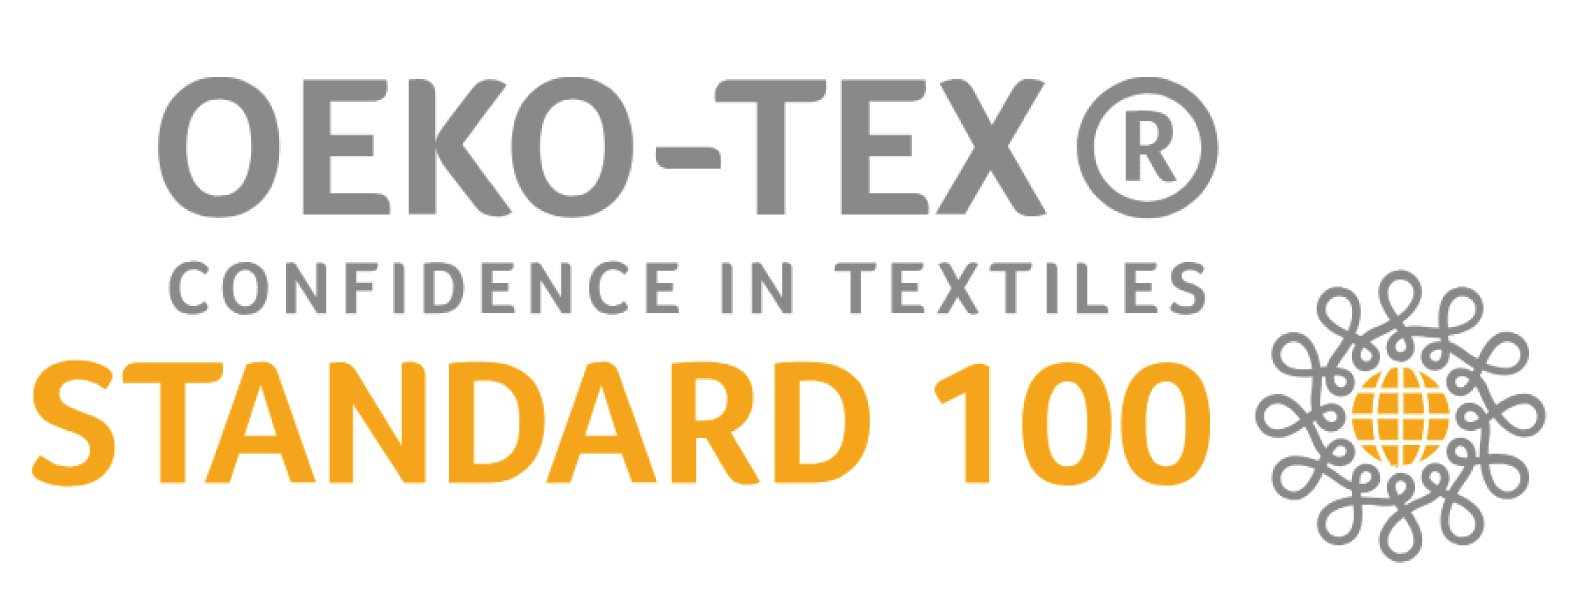 https://www.oeko-tex.com/en/our-standards/standard-100-by-oeko-tex